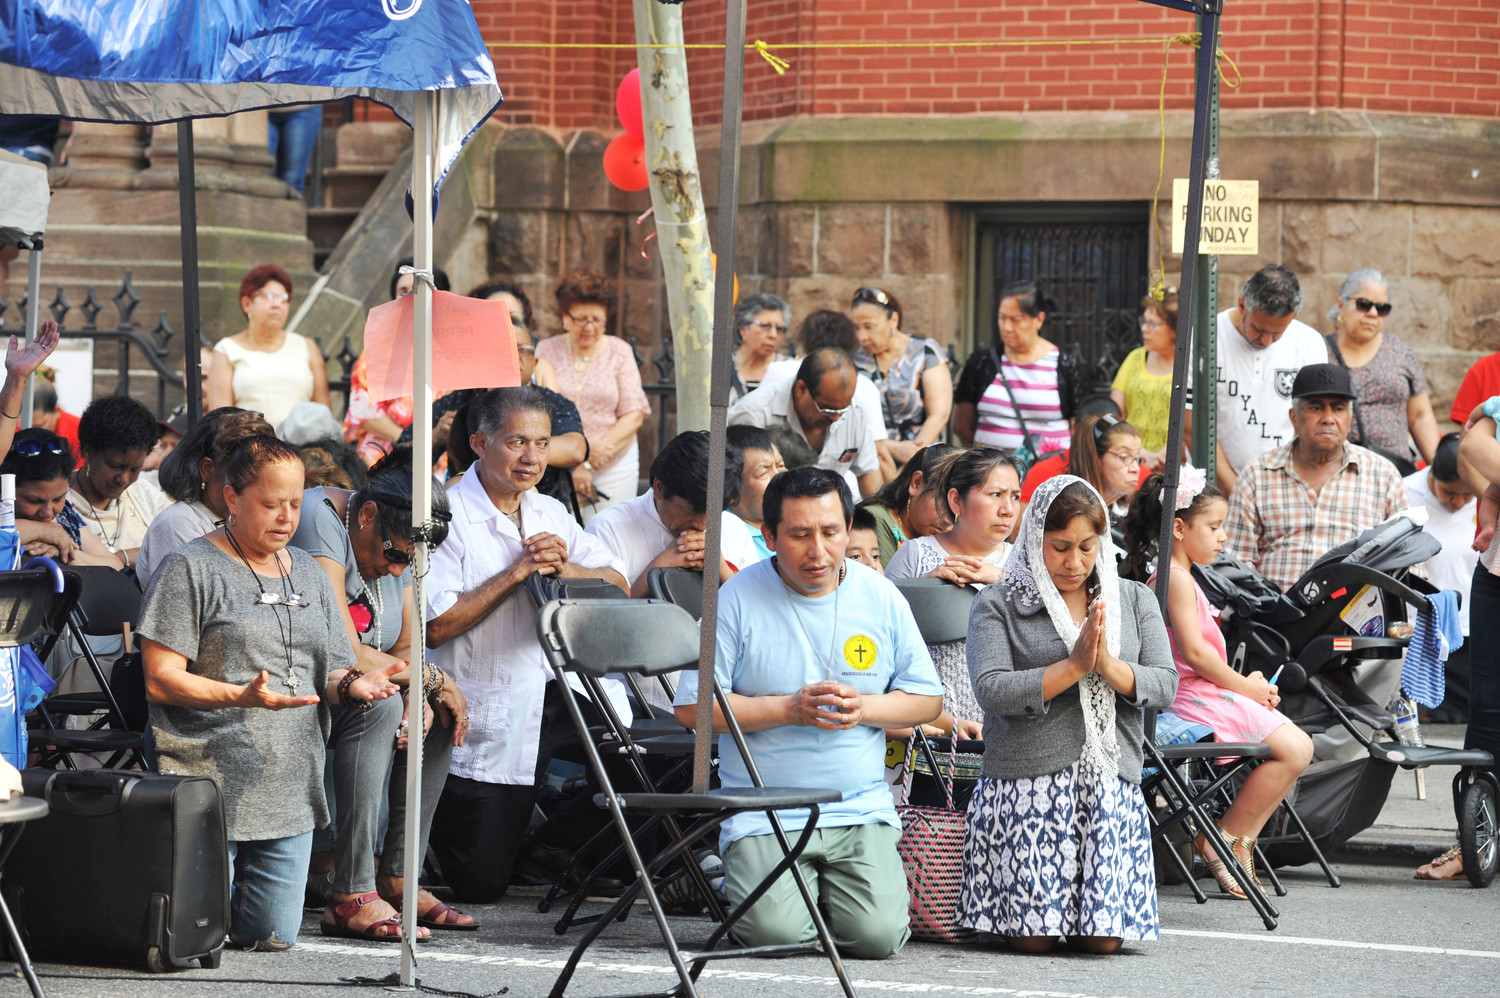 The sun shines brightly upon congregants as they pray during the street Mass outside St. Cecilia and Holy Agony Church on East 106th Street in Manhattan July 1. Father Peter Mushi, A.J., the pastor, served as principal celebrant and homilist.